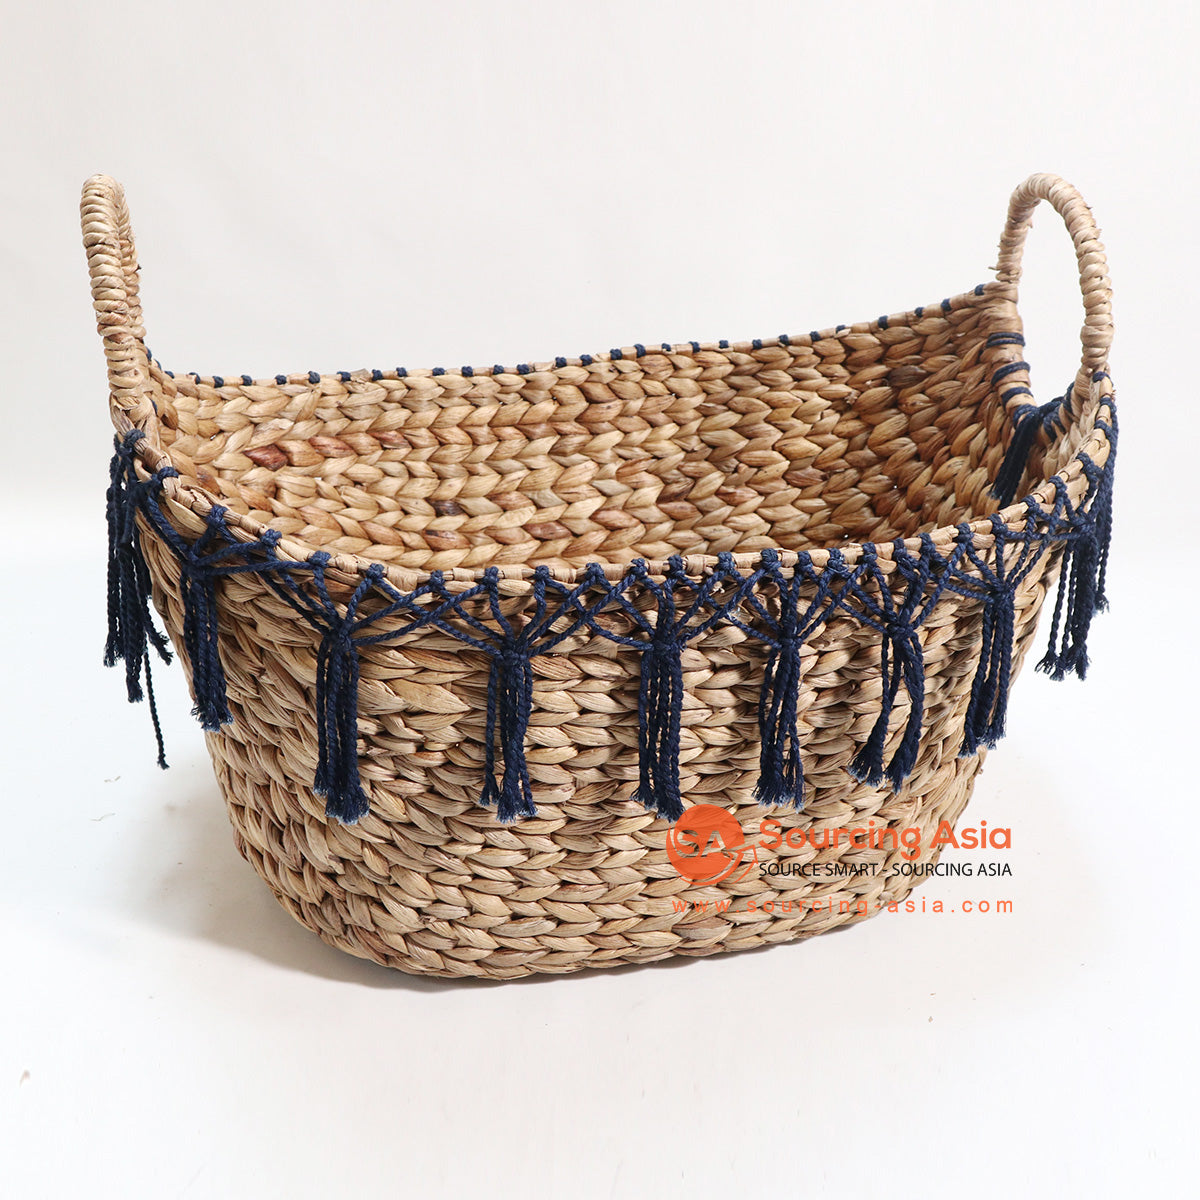 HBSC118 WATER HYACINTH AND MACRAME BASKET